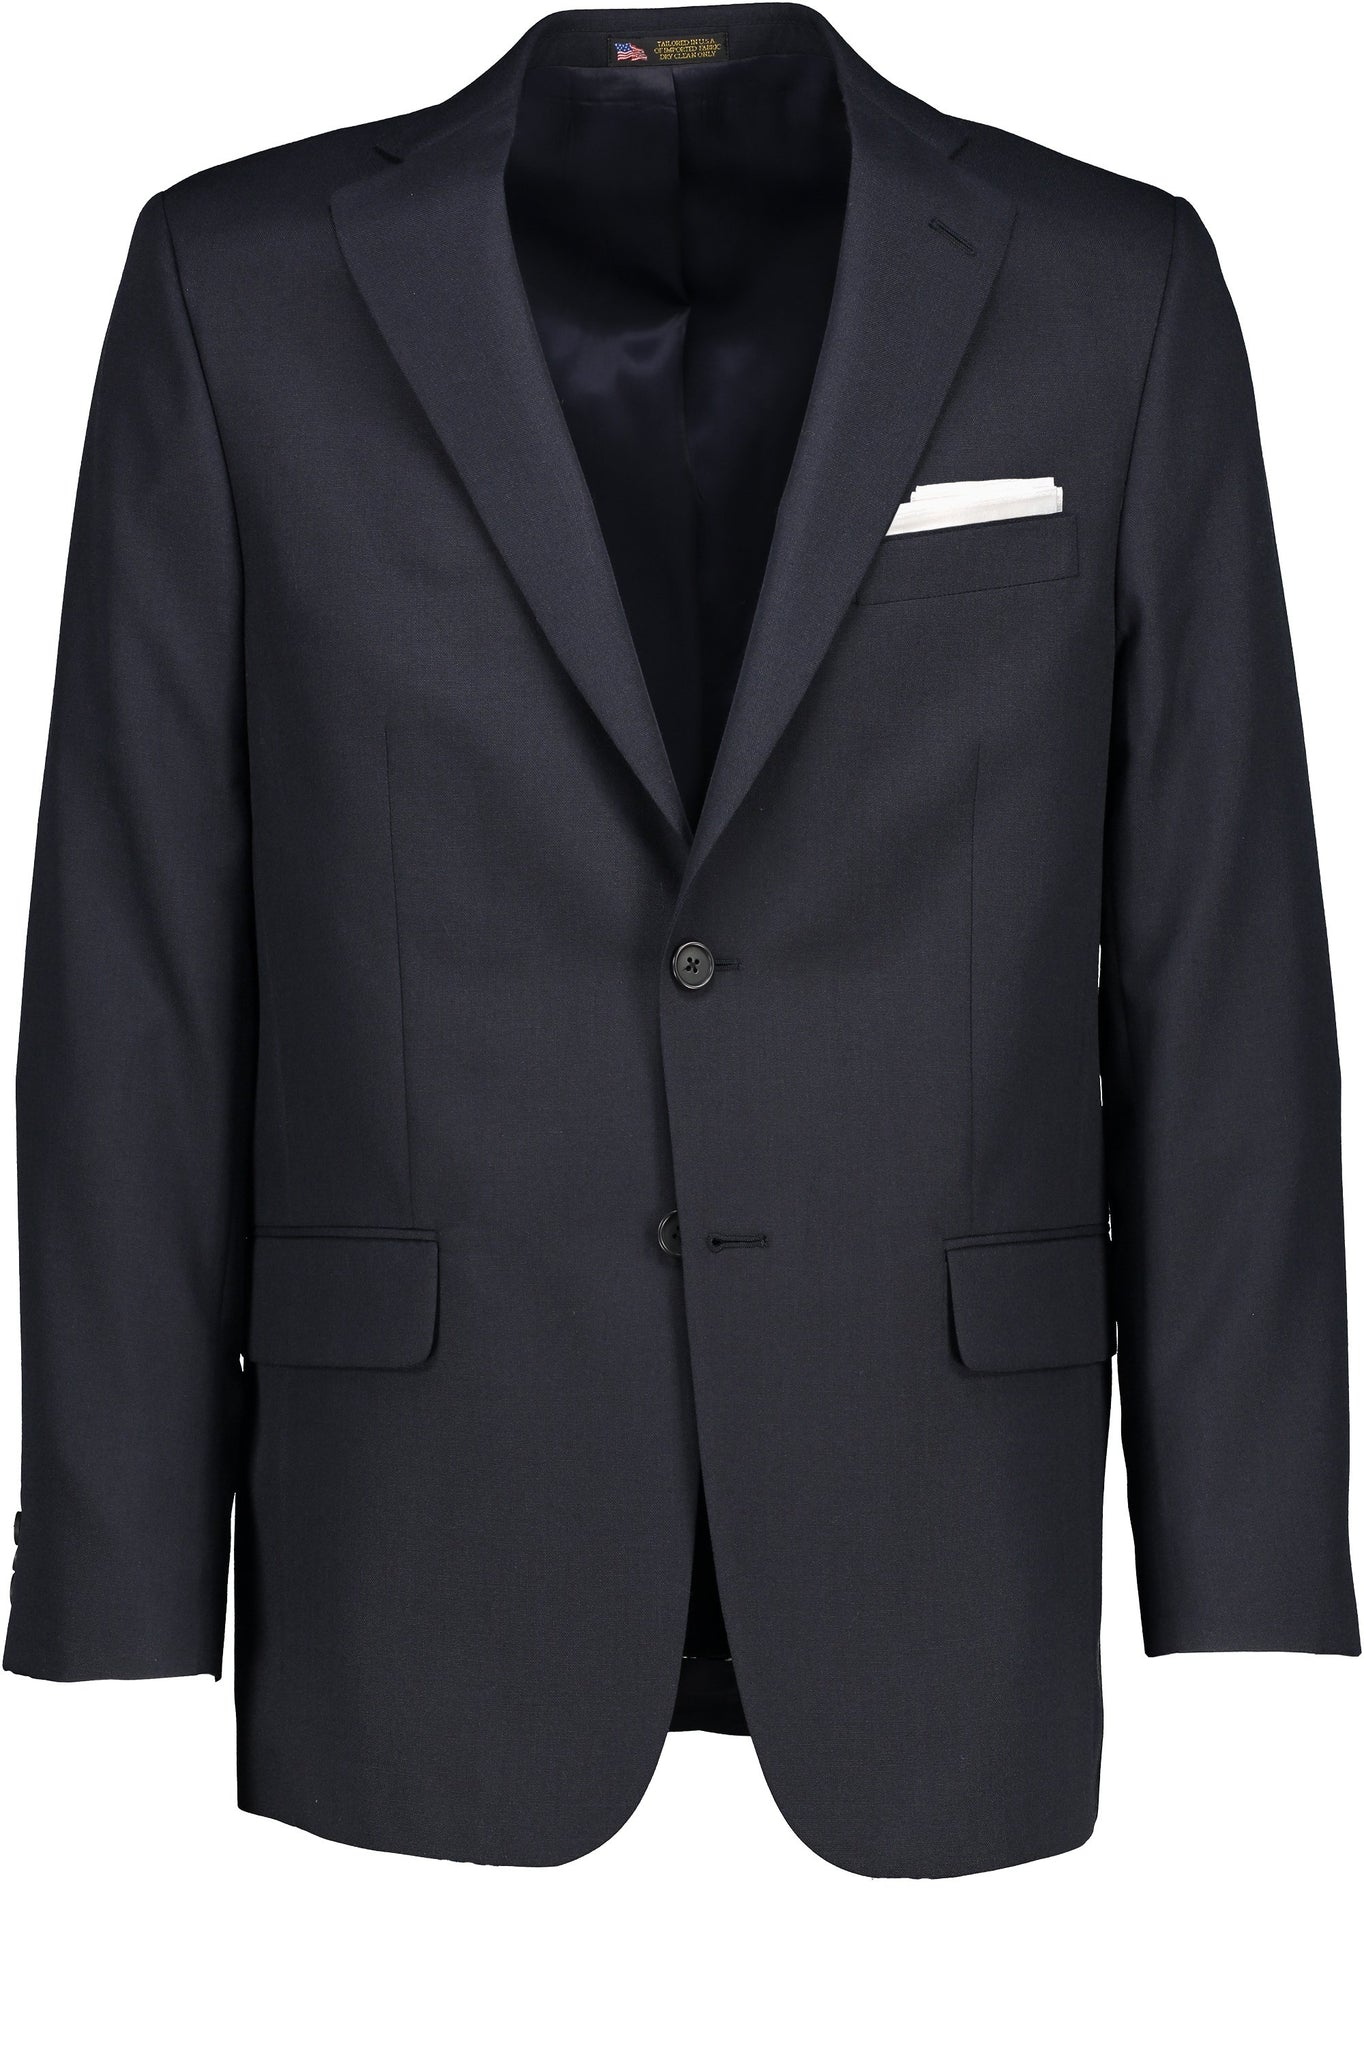 Classic Fit Navy Wool Traveler Suit Separate Jacket -  Hardwick.com